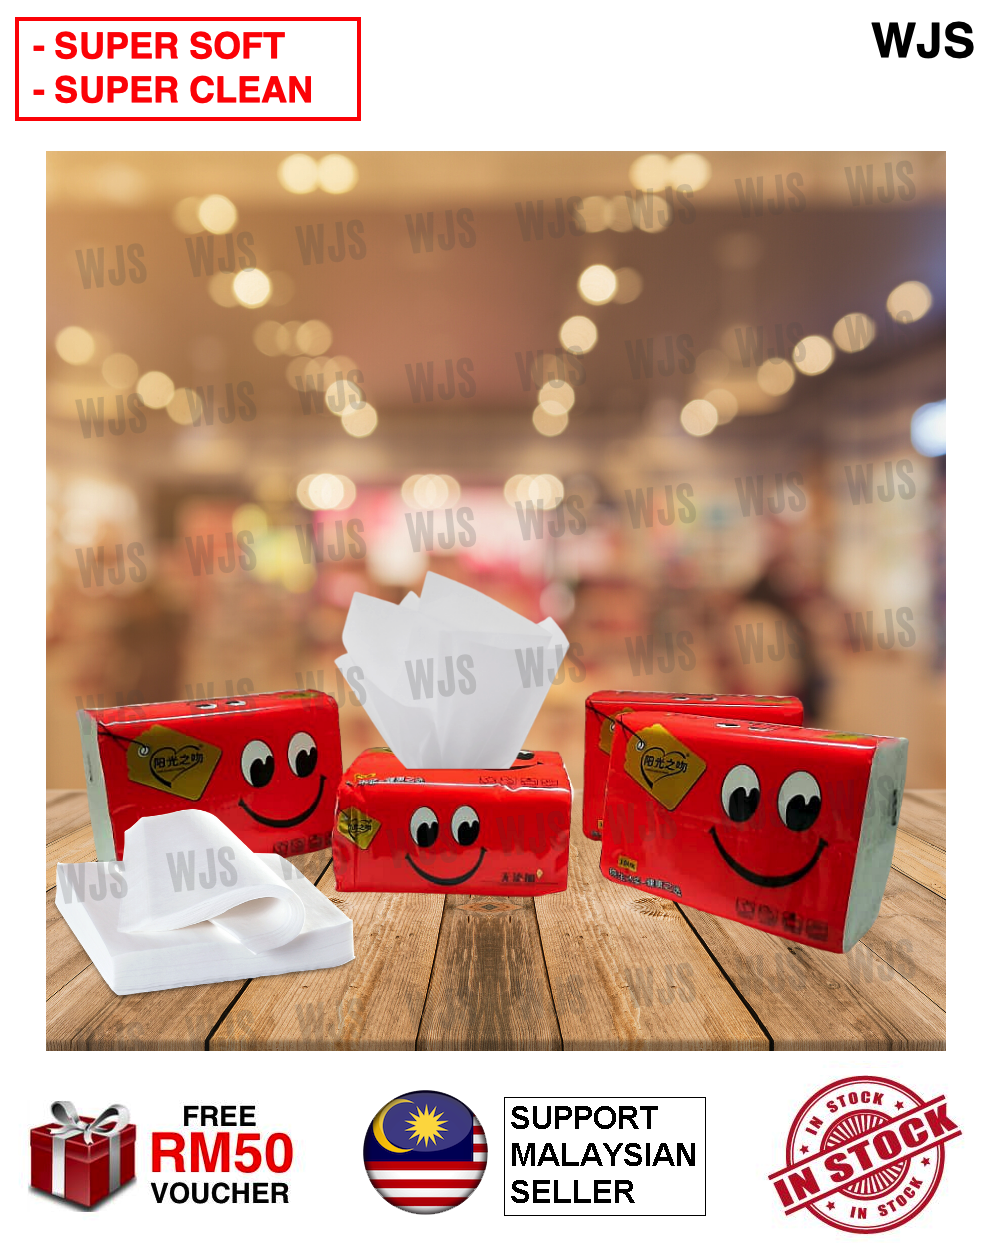 (SUPER SOFT AND CLEAN) WJS 4 Ply 4 Layer Organic Natural Tissue Facial Tissue Paper Toilet Paper Travel Paper Soft Pack Hand Towel Fire Resistant Sanitised Anti Bacteria Travel Size Kertas Tisu Tandas RED [FREE RM 50 VOUCHER]